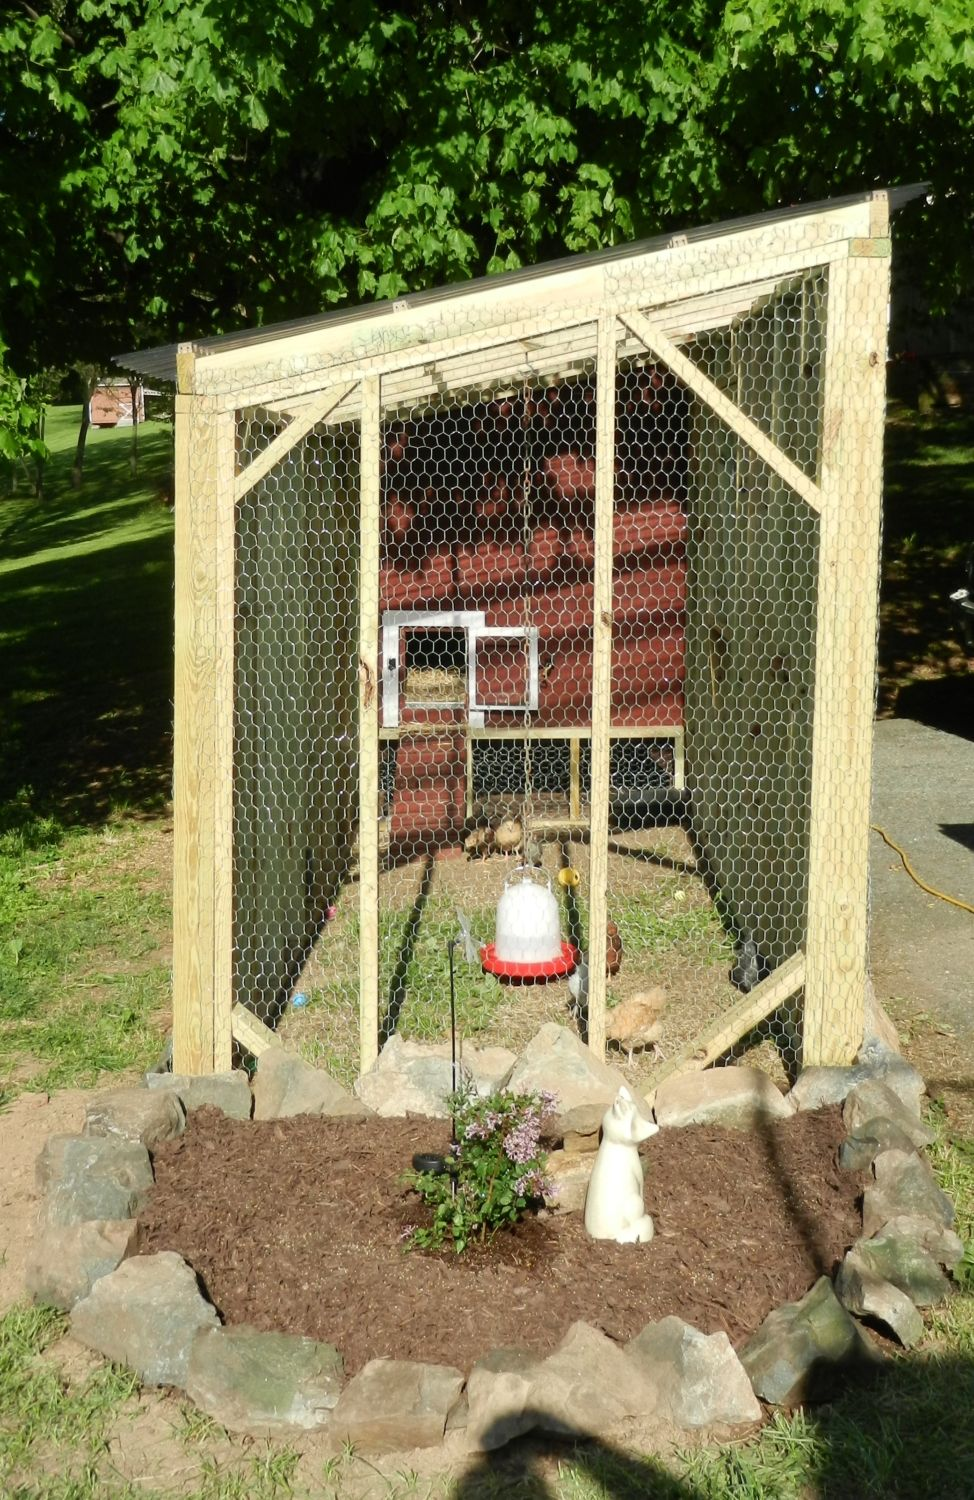 need shade ideas for coop backyard chickens